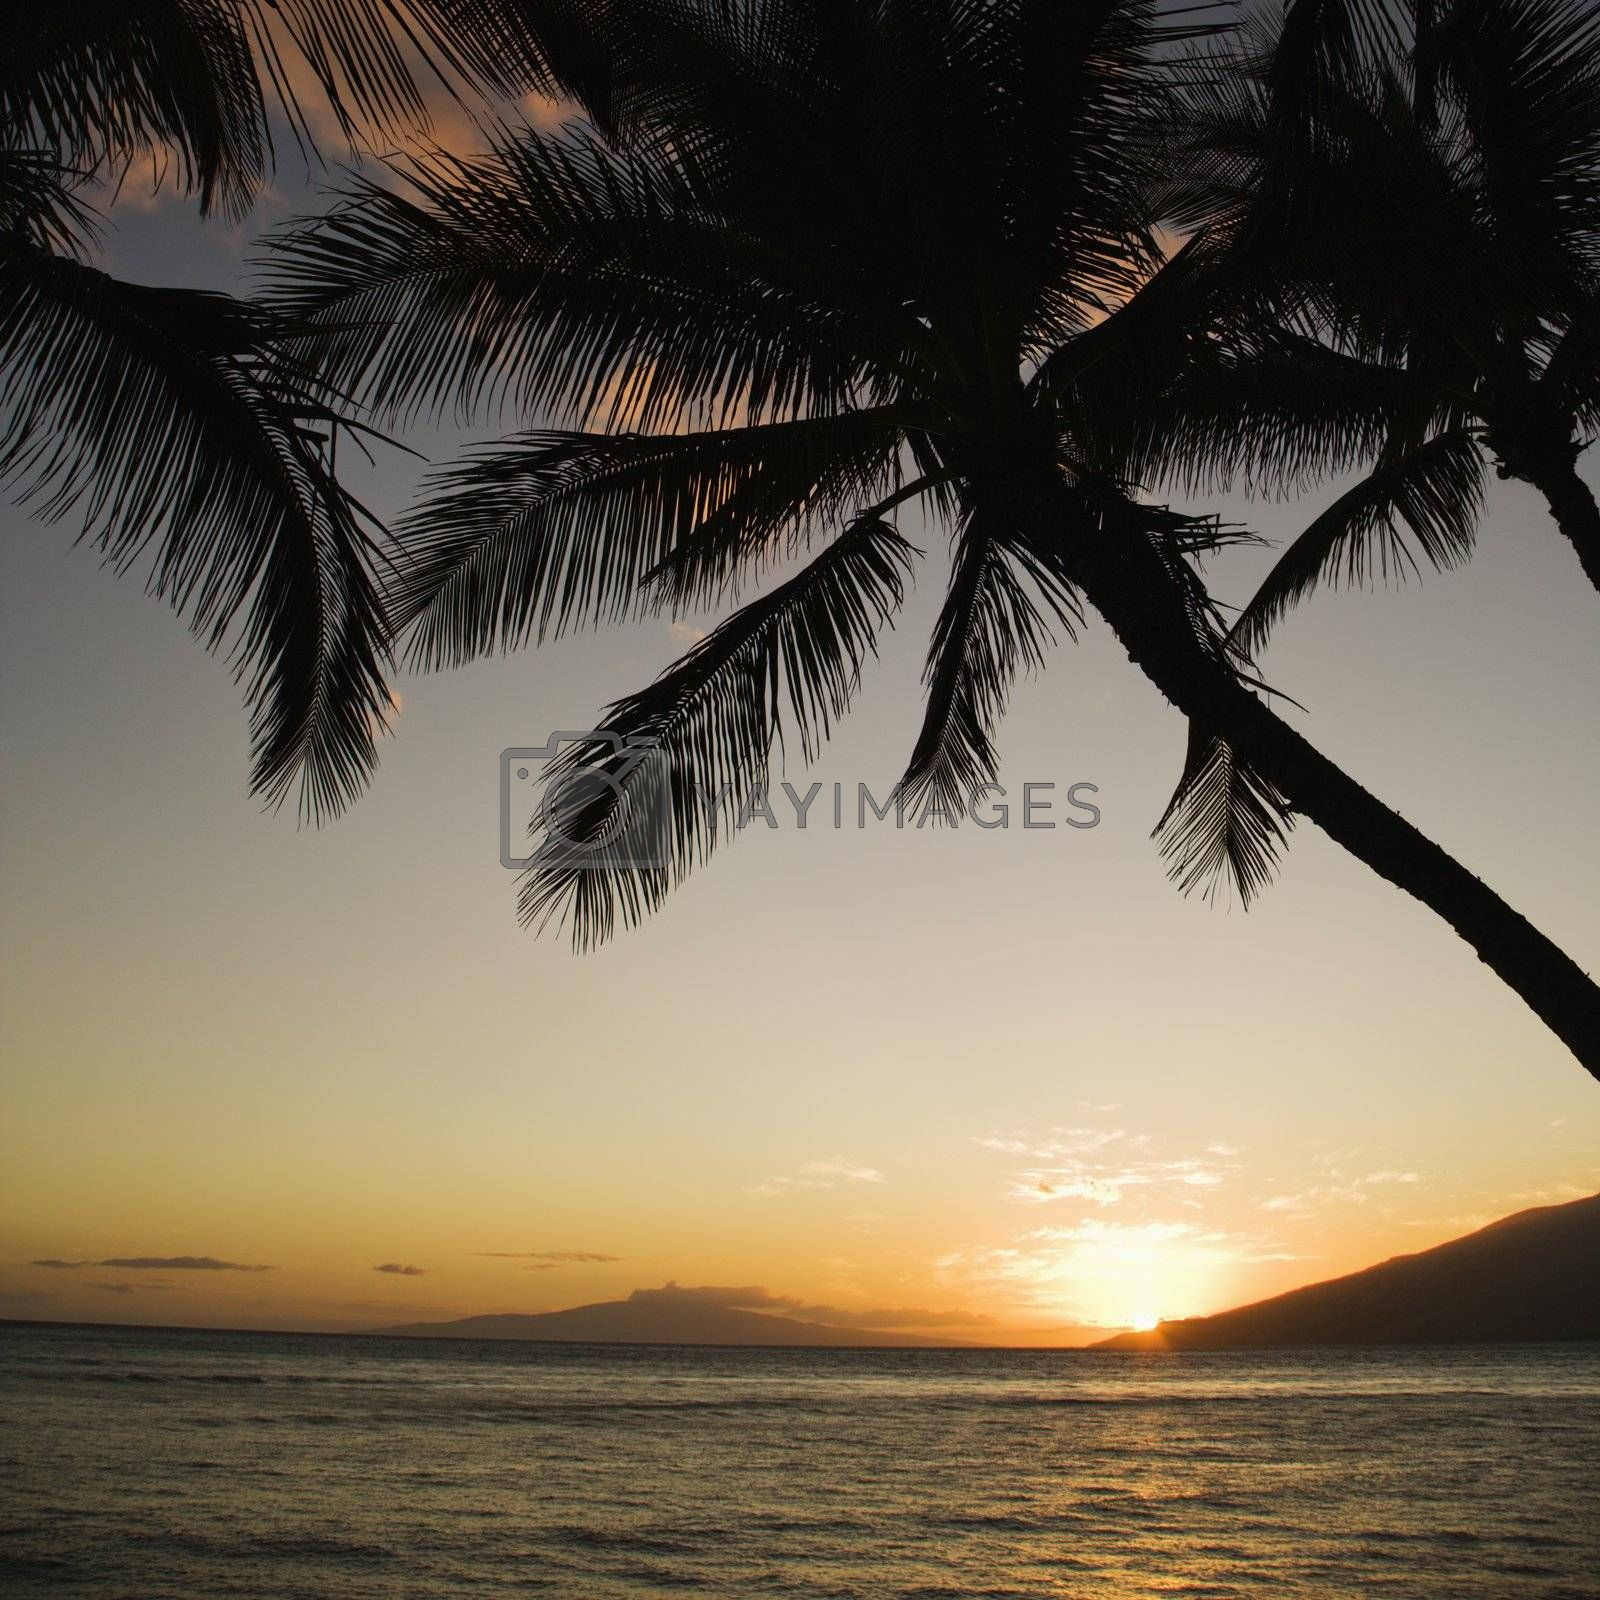 Sunset over Pacific ocean with silhouetted palm trees.